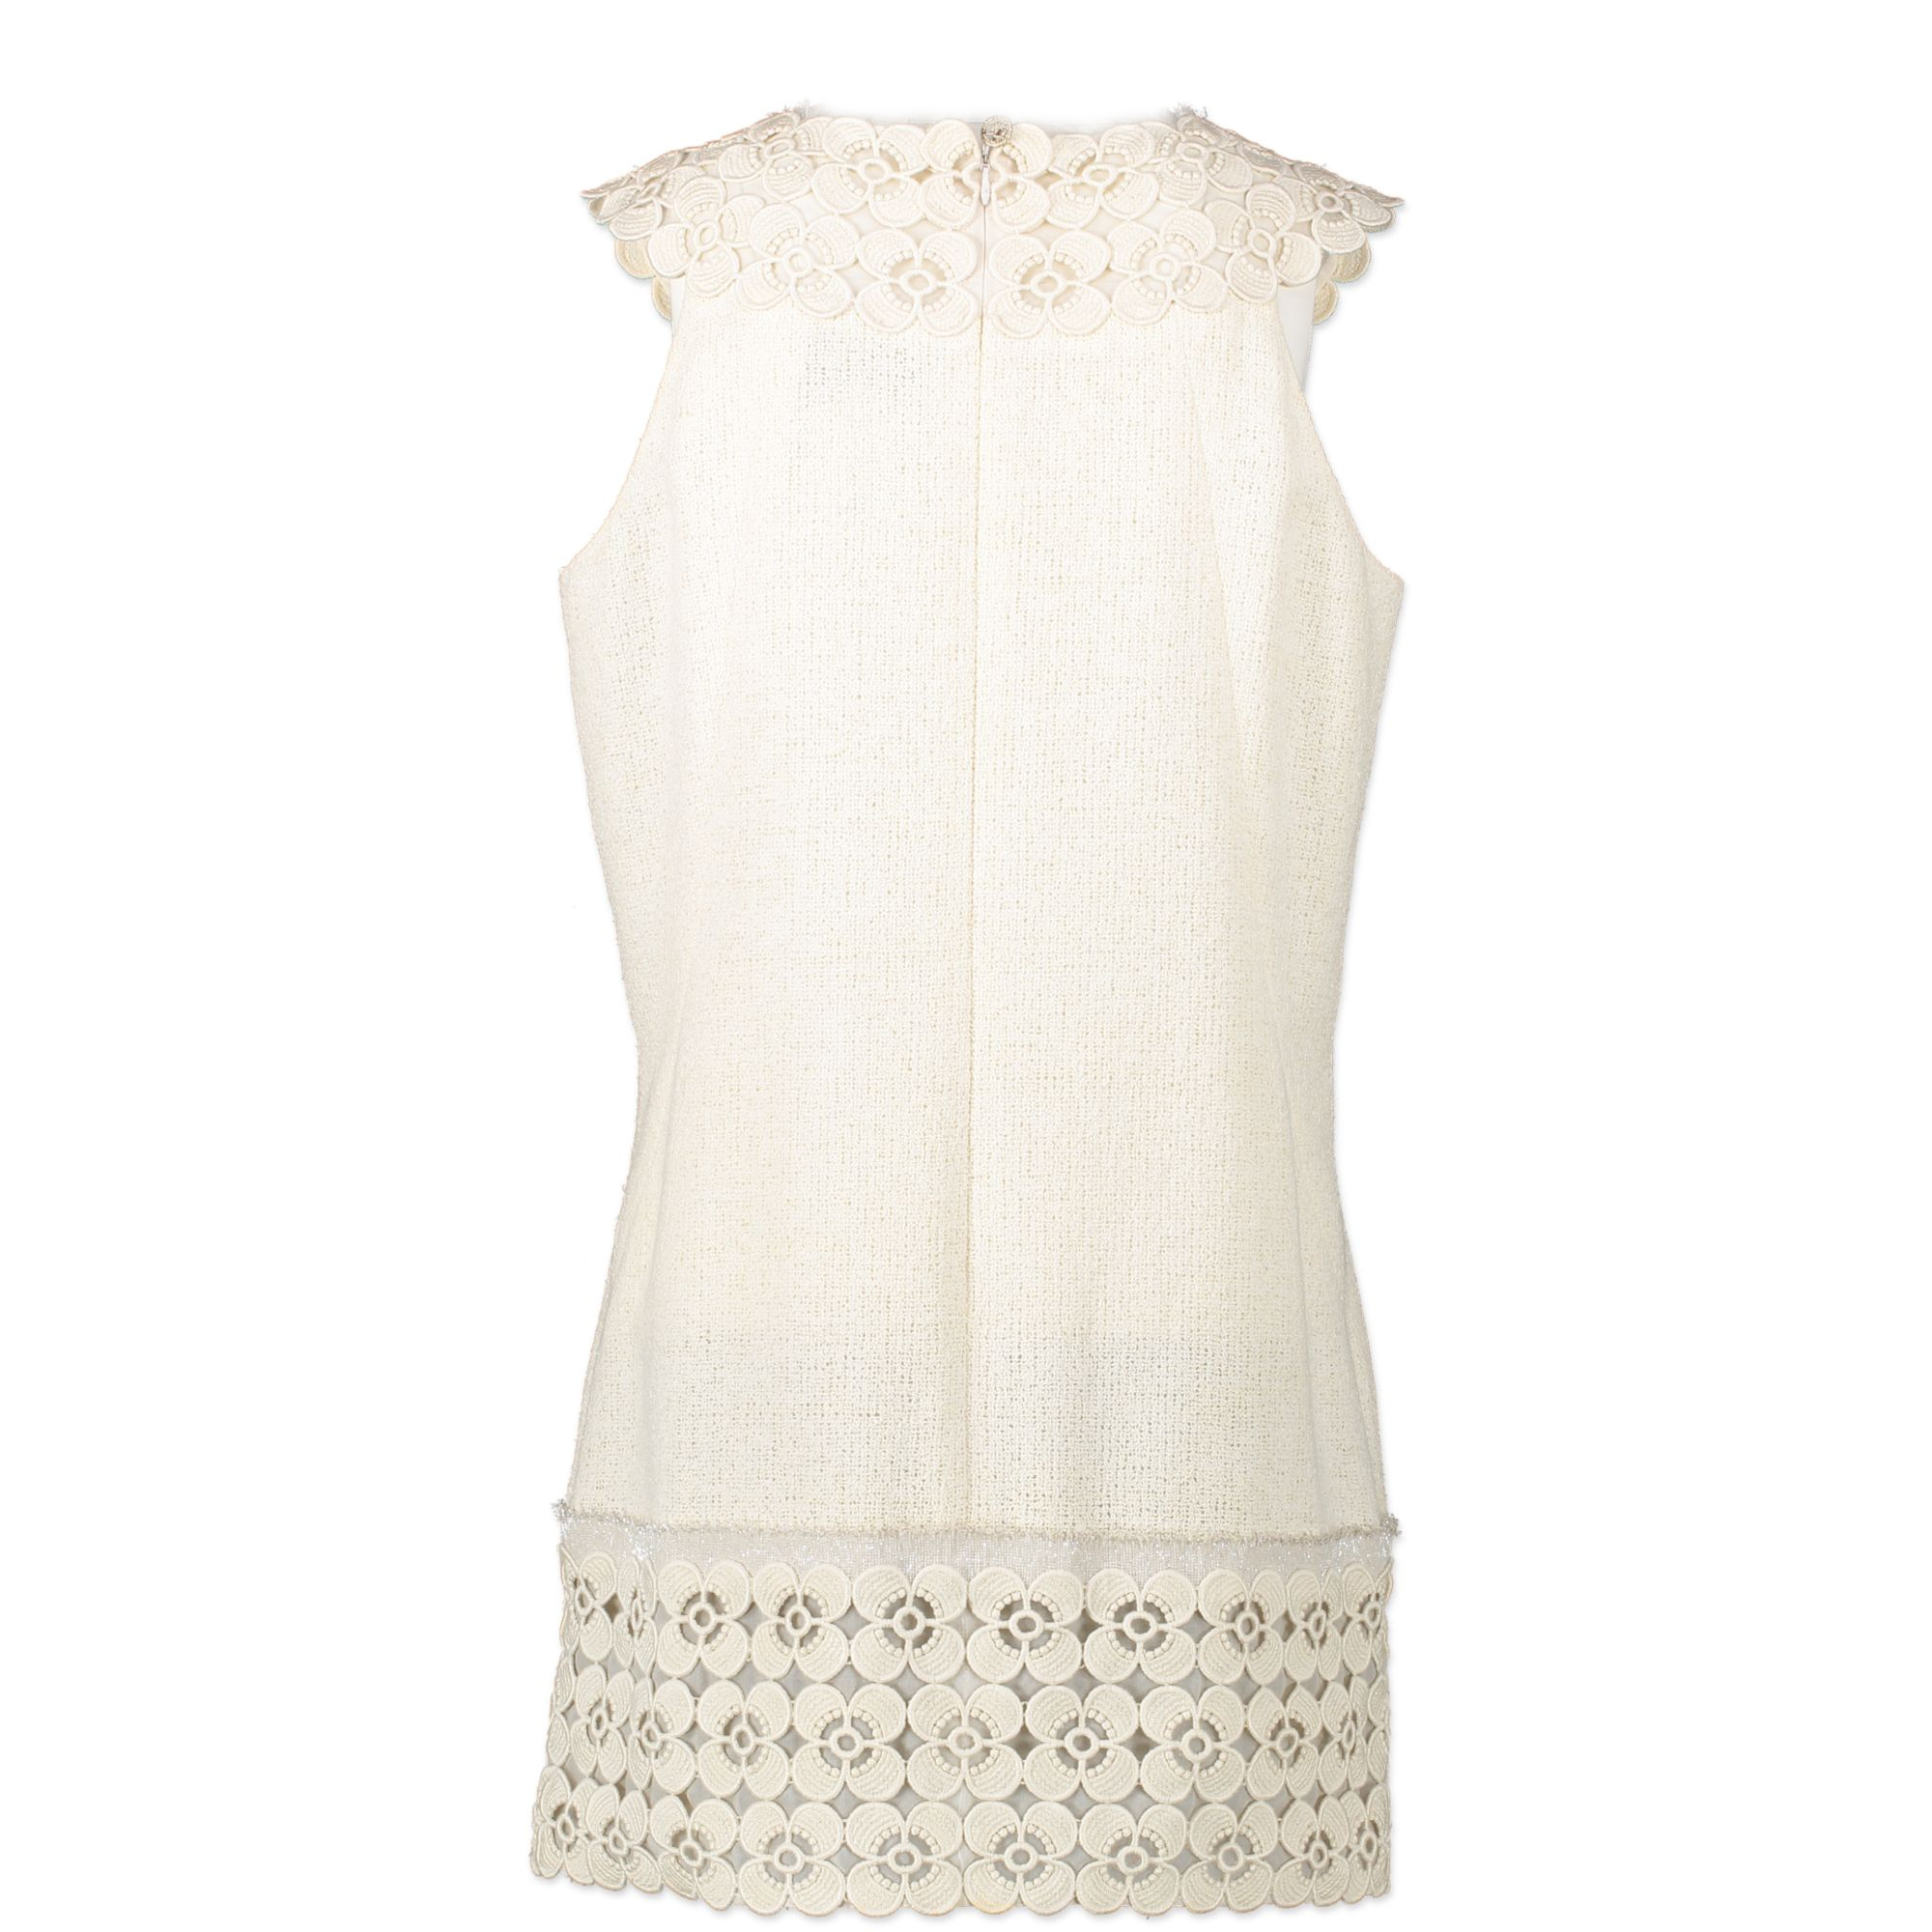 Authentic second-hand vintage Chanel White Tweed Dress buy online webshop LabelLOV